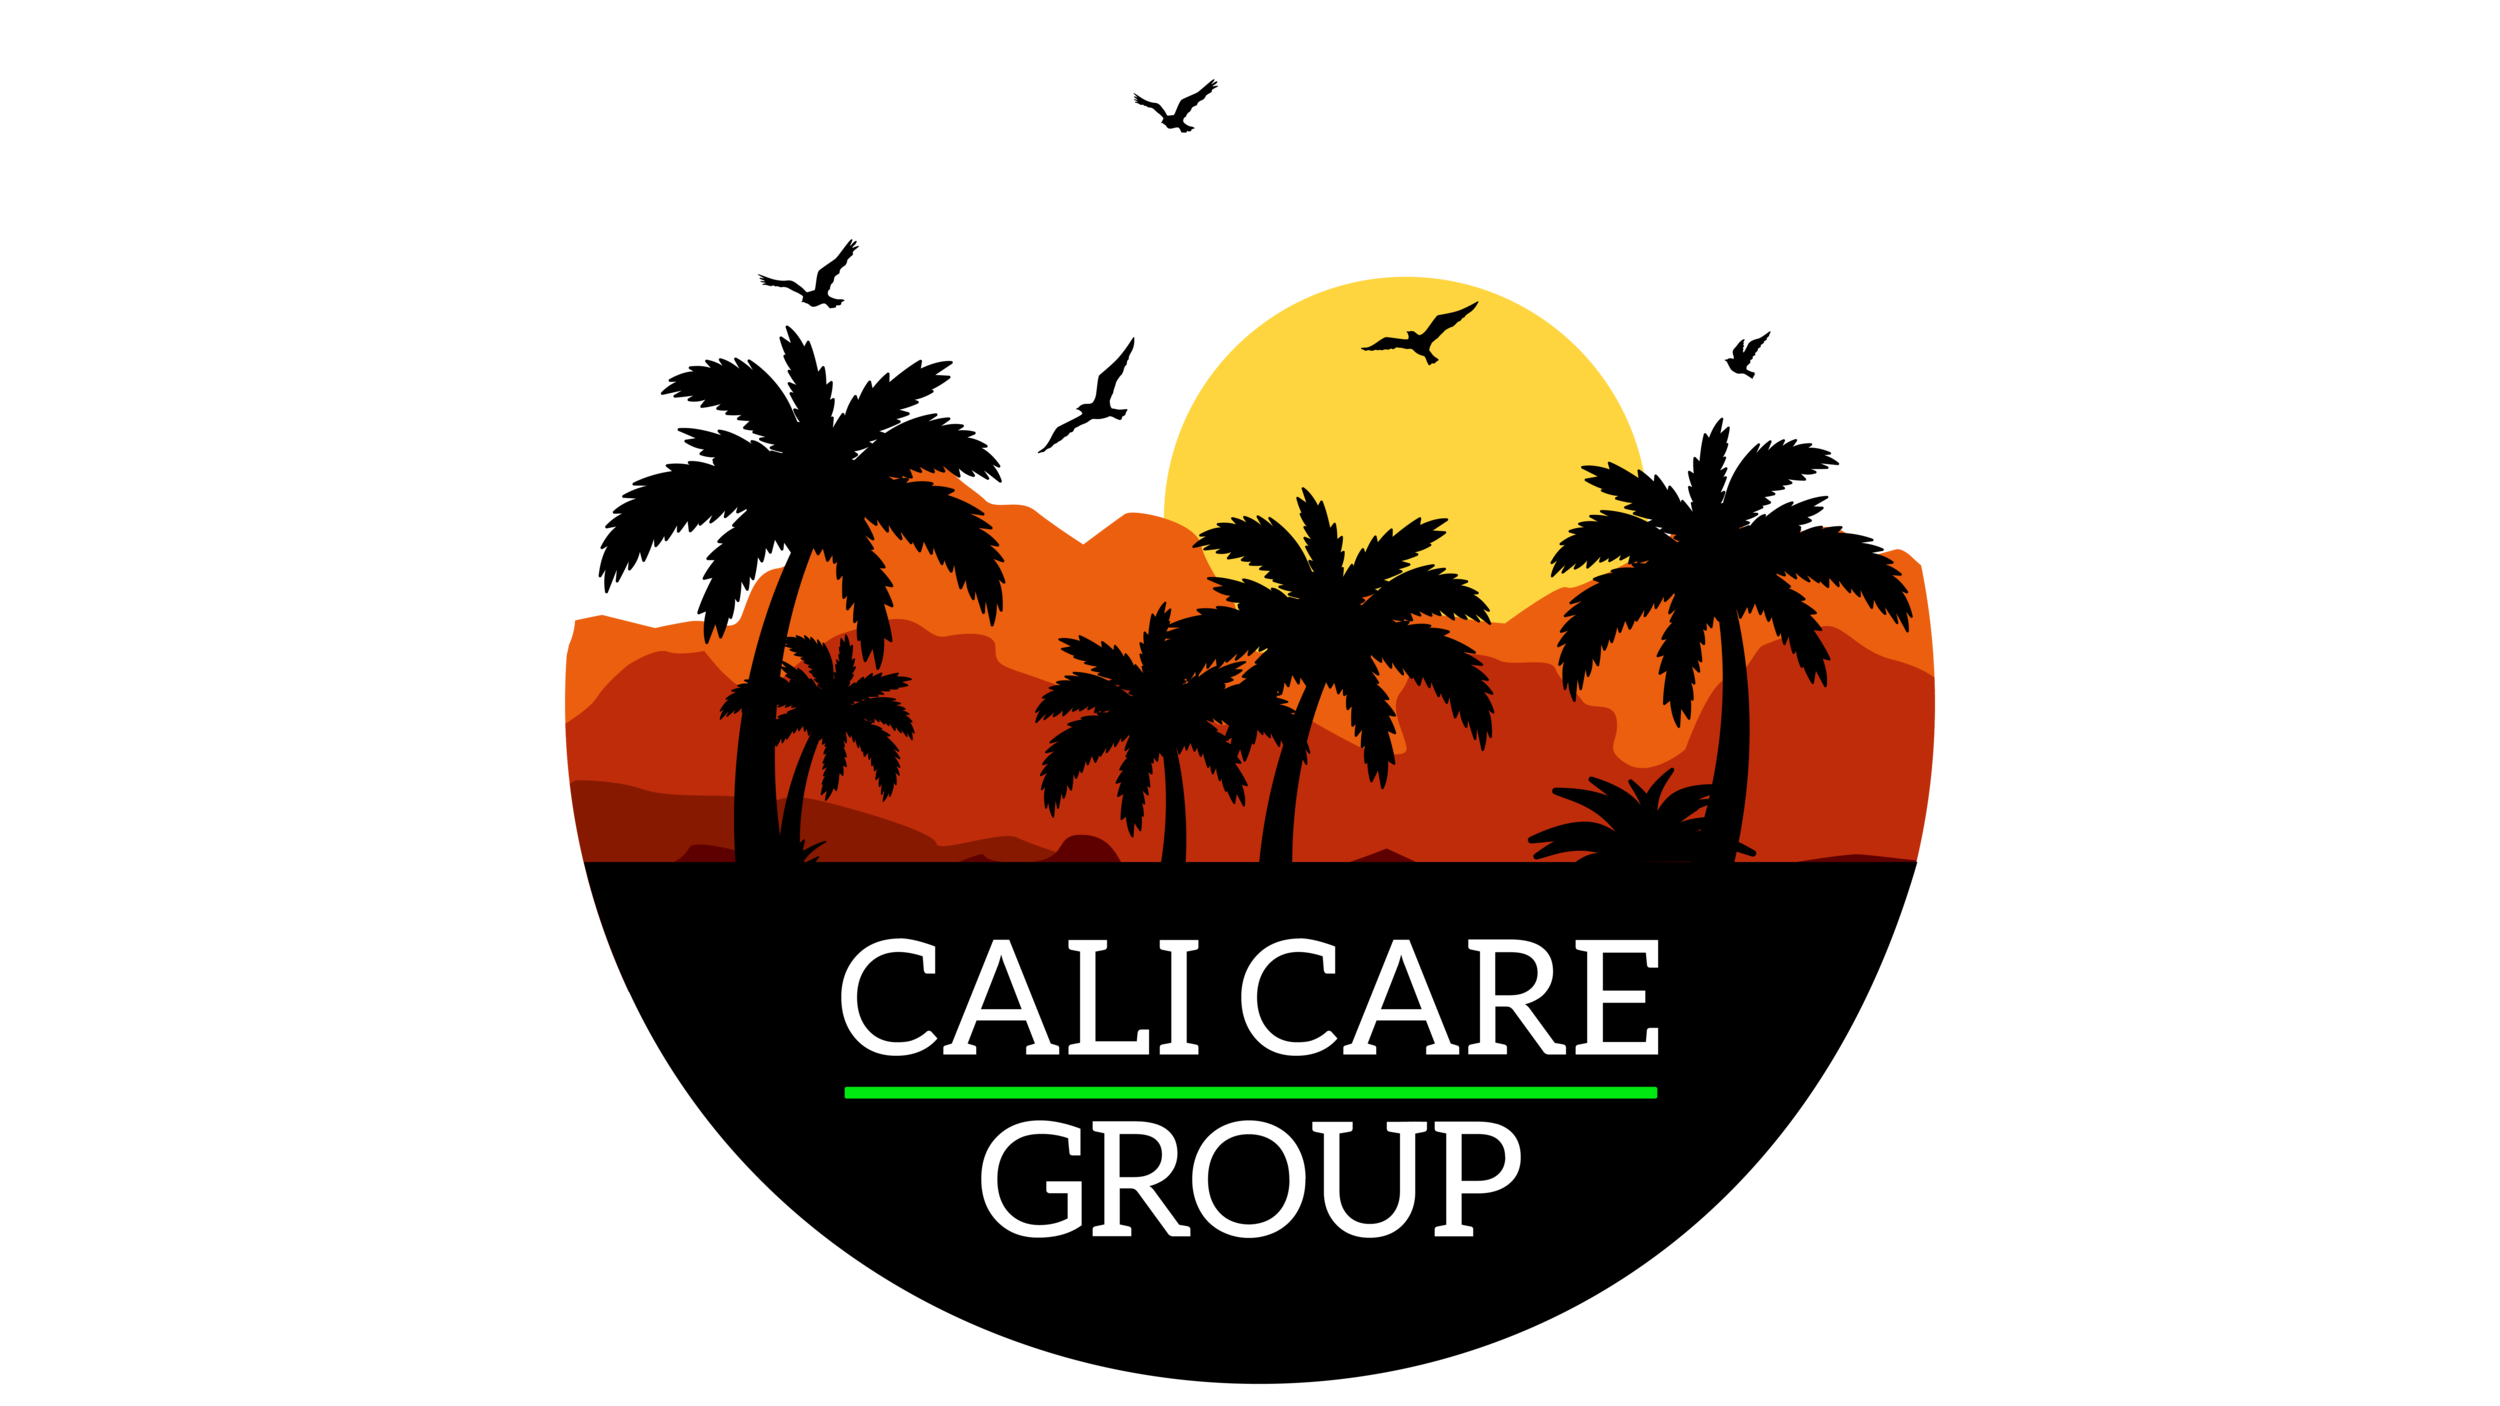 Cali Care Group